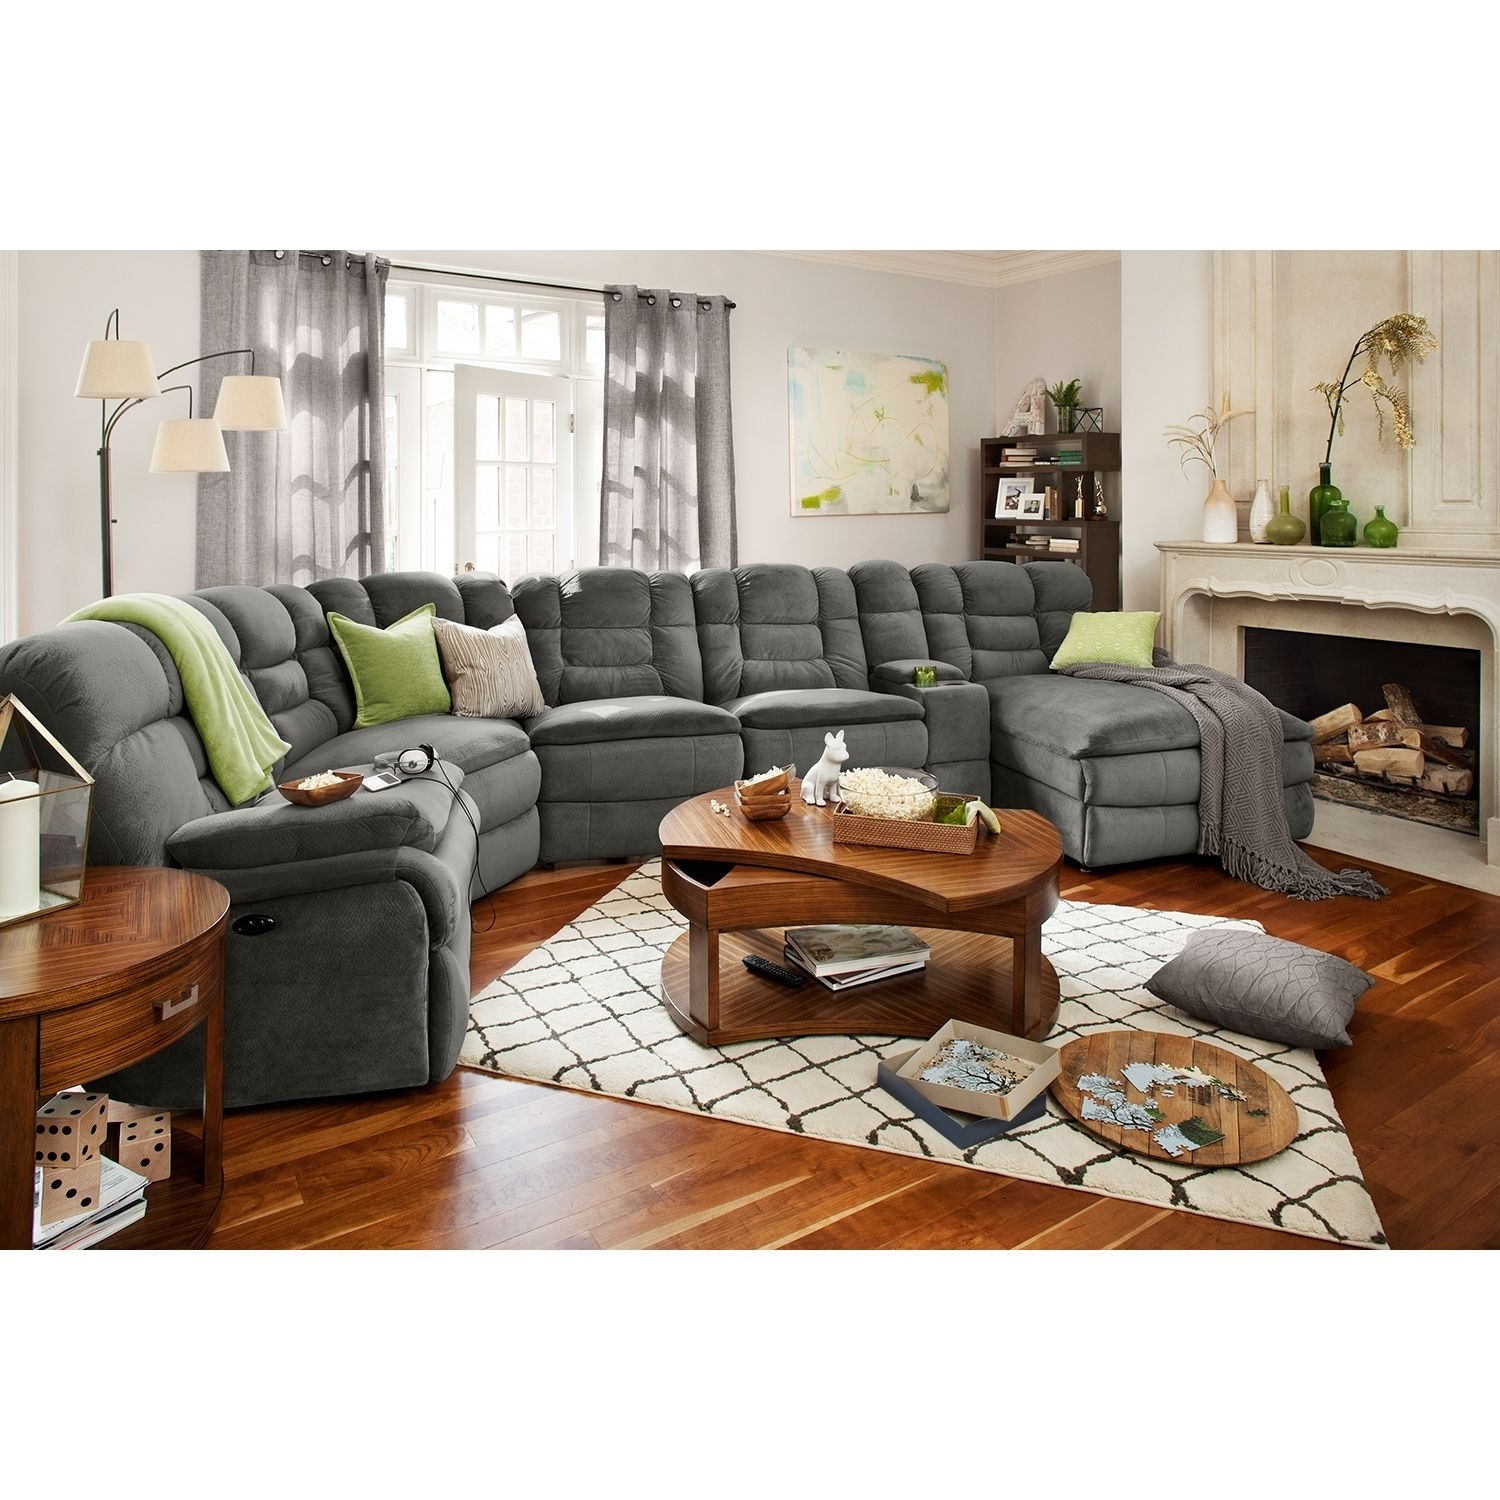 Big Softie 6 Piece Power Reclining Sectional With Right Facing Inside Jackson 6 Piece Power Reclining Sectionals With Sleeper (View 22 of 25)